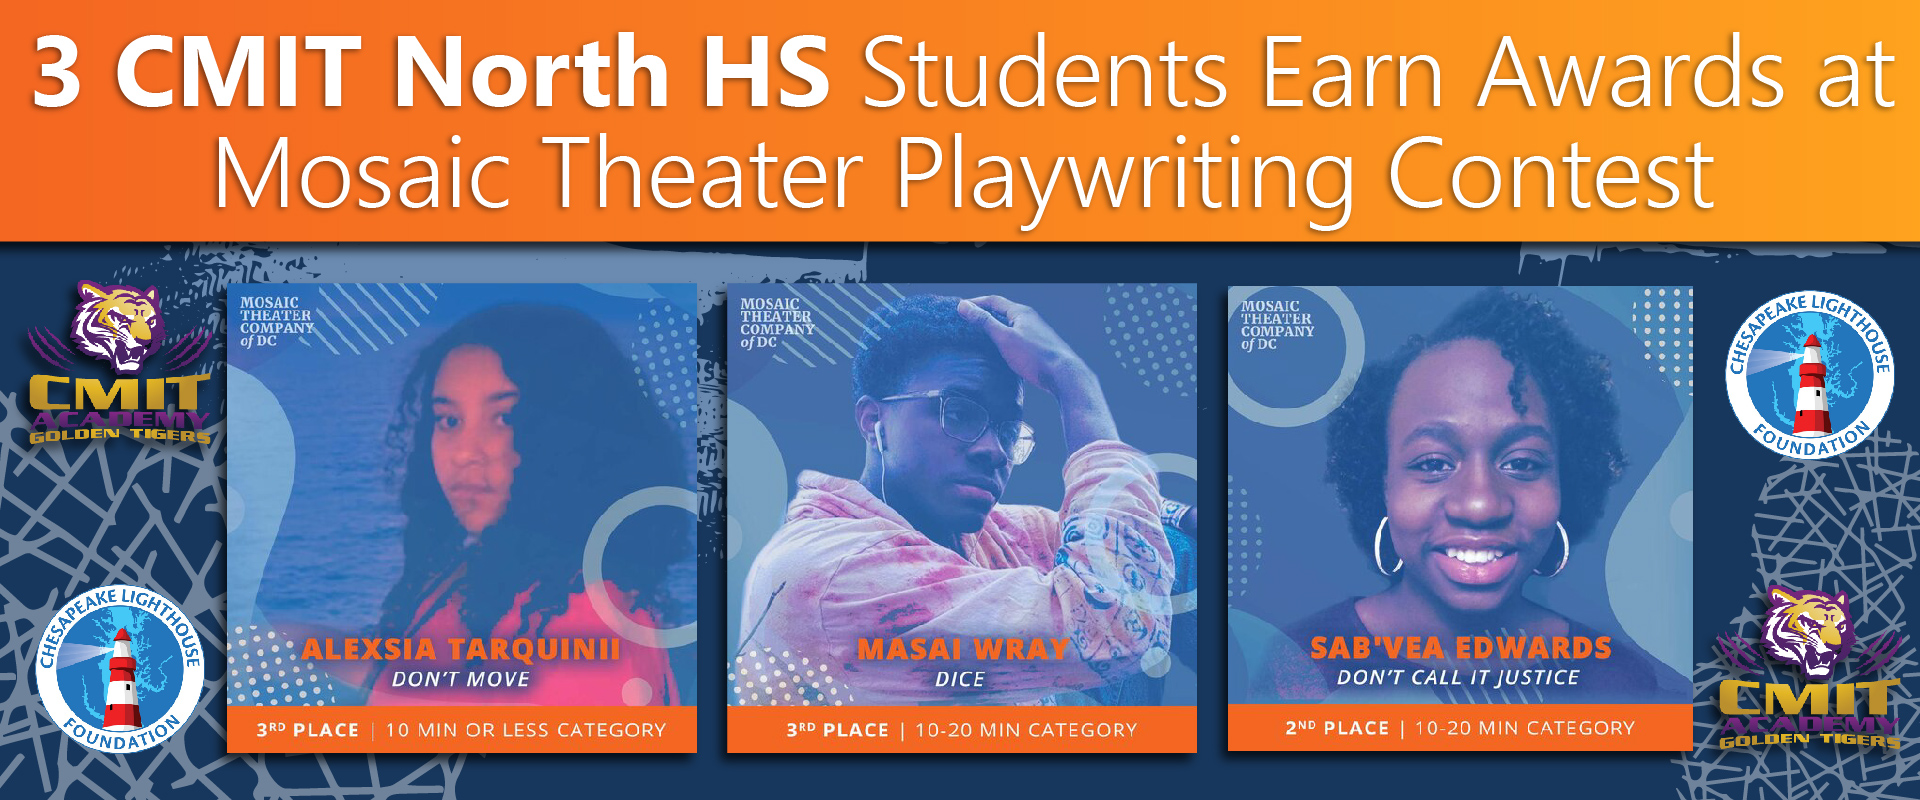 3 CMIT North HS Students Earn Awards at Mosaic Theater Playwriting Contest